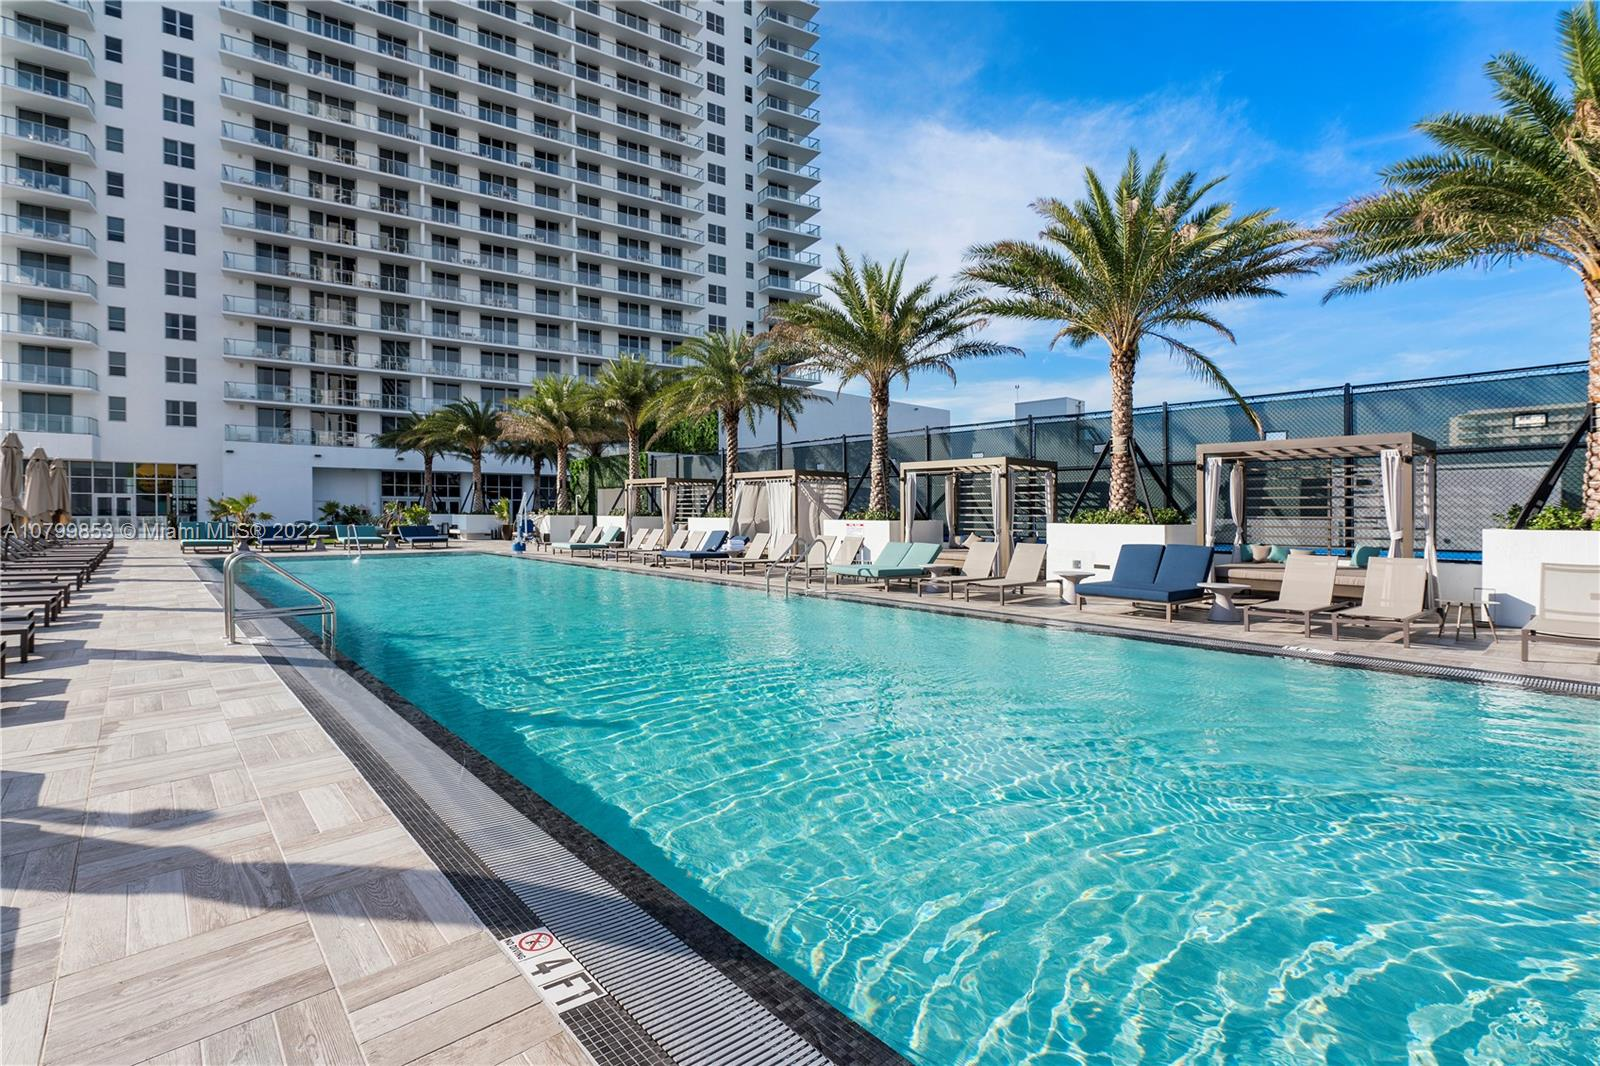 4010 S Ocean Dr # 3406, Hollywood FL 33019